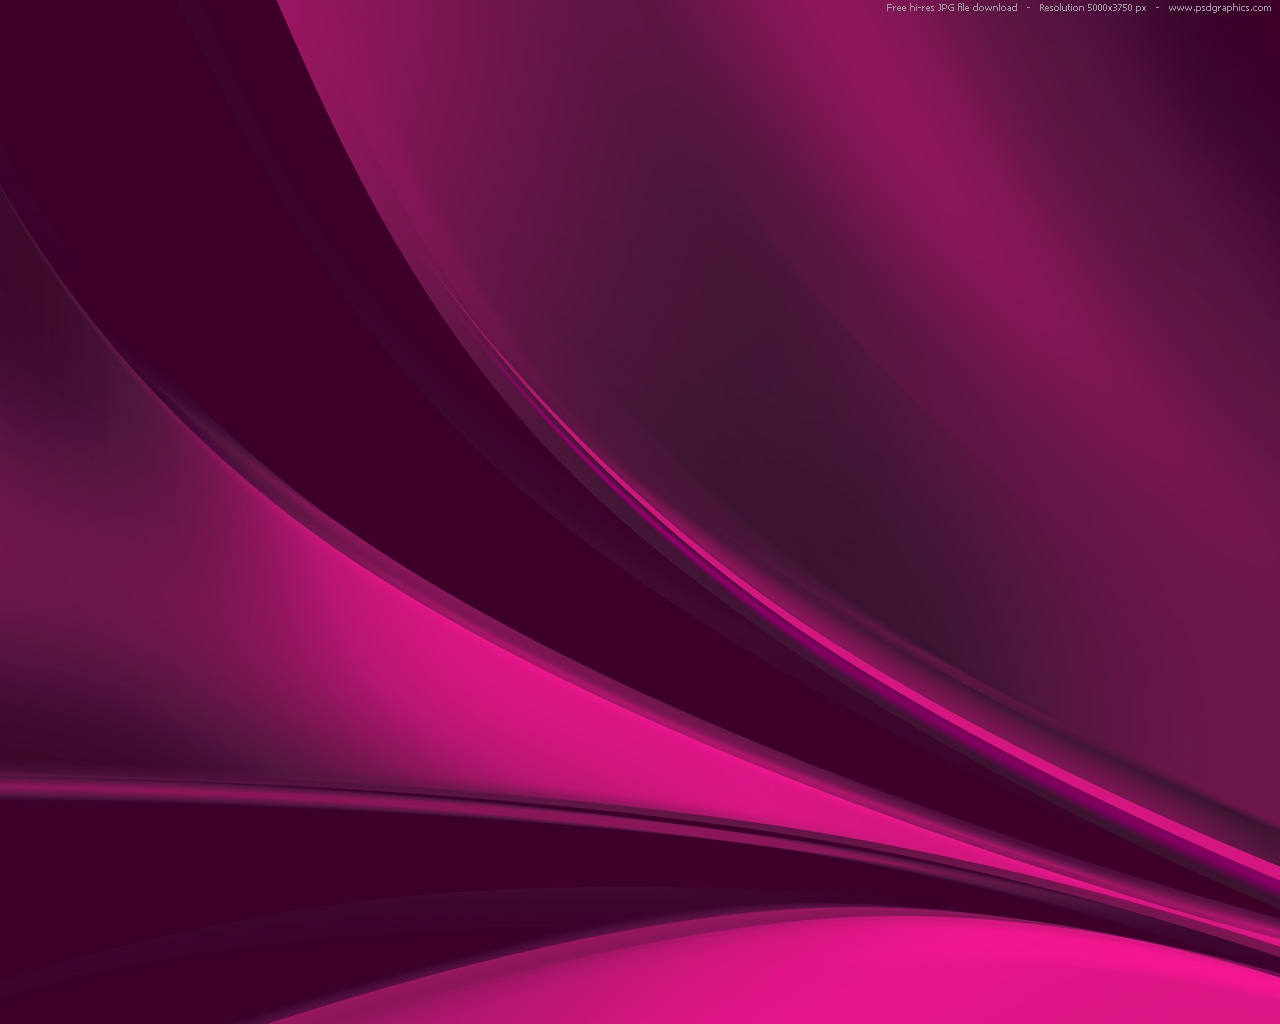 Light pink and blue wallpaper html code - And Blue Leafs Hd Wallpaper Fullhdwpp Full Hd Colorful Abstract Lights